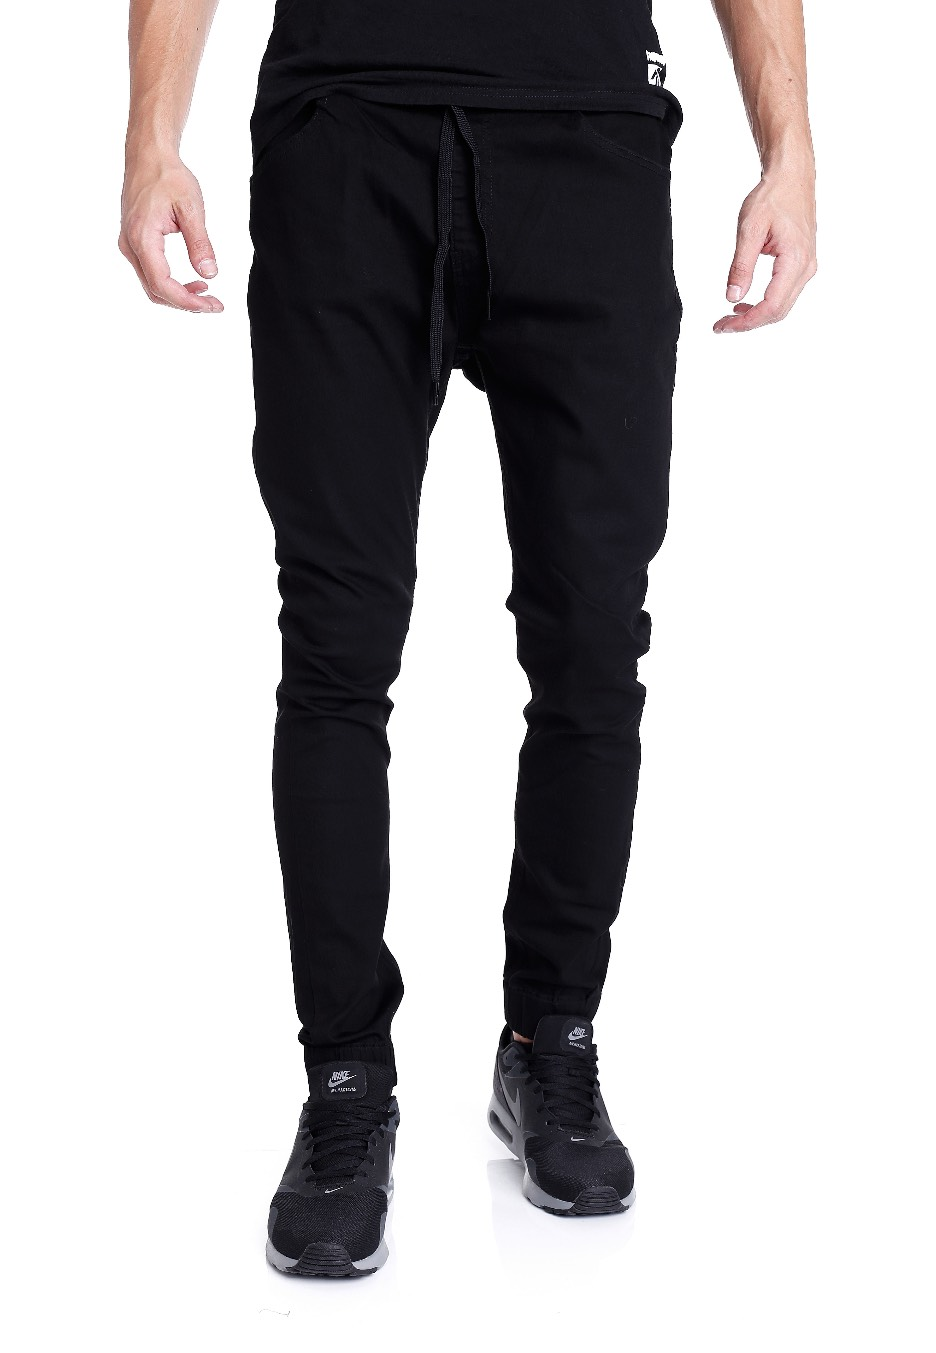 S&S Activewear offers a wide selection of Sweatpants clothing from a variety of brands. Buy Sweatpants clothing with S&S Activewear and get free freight on orders over $